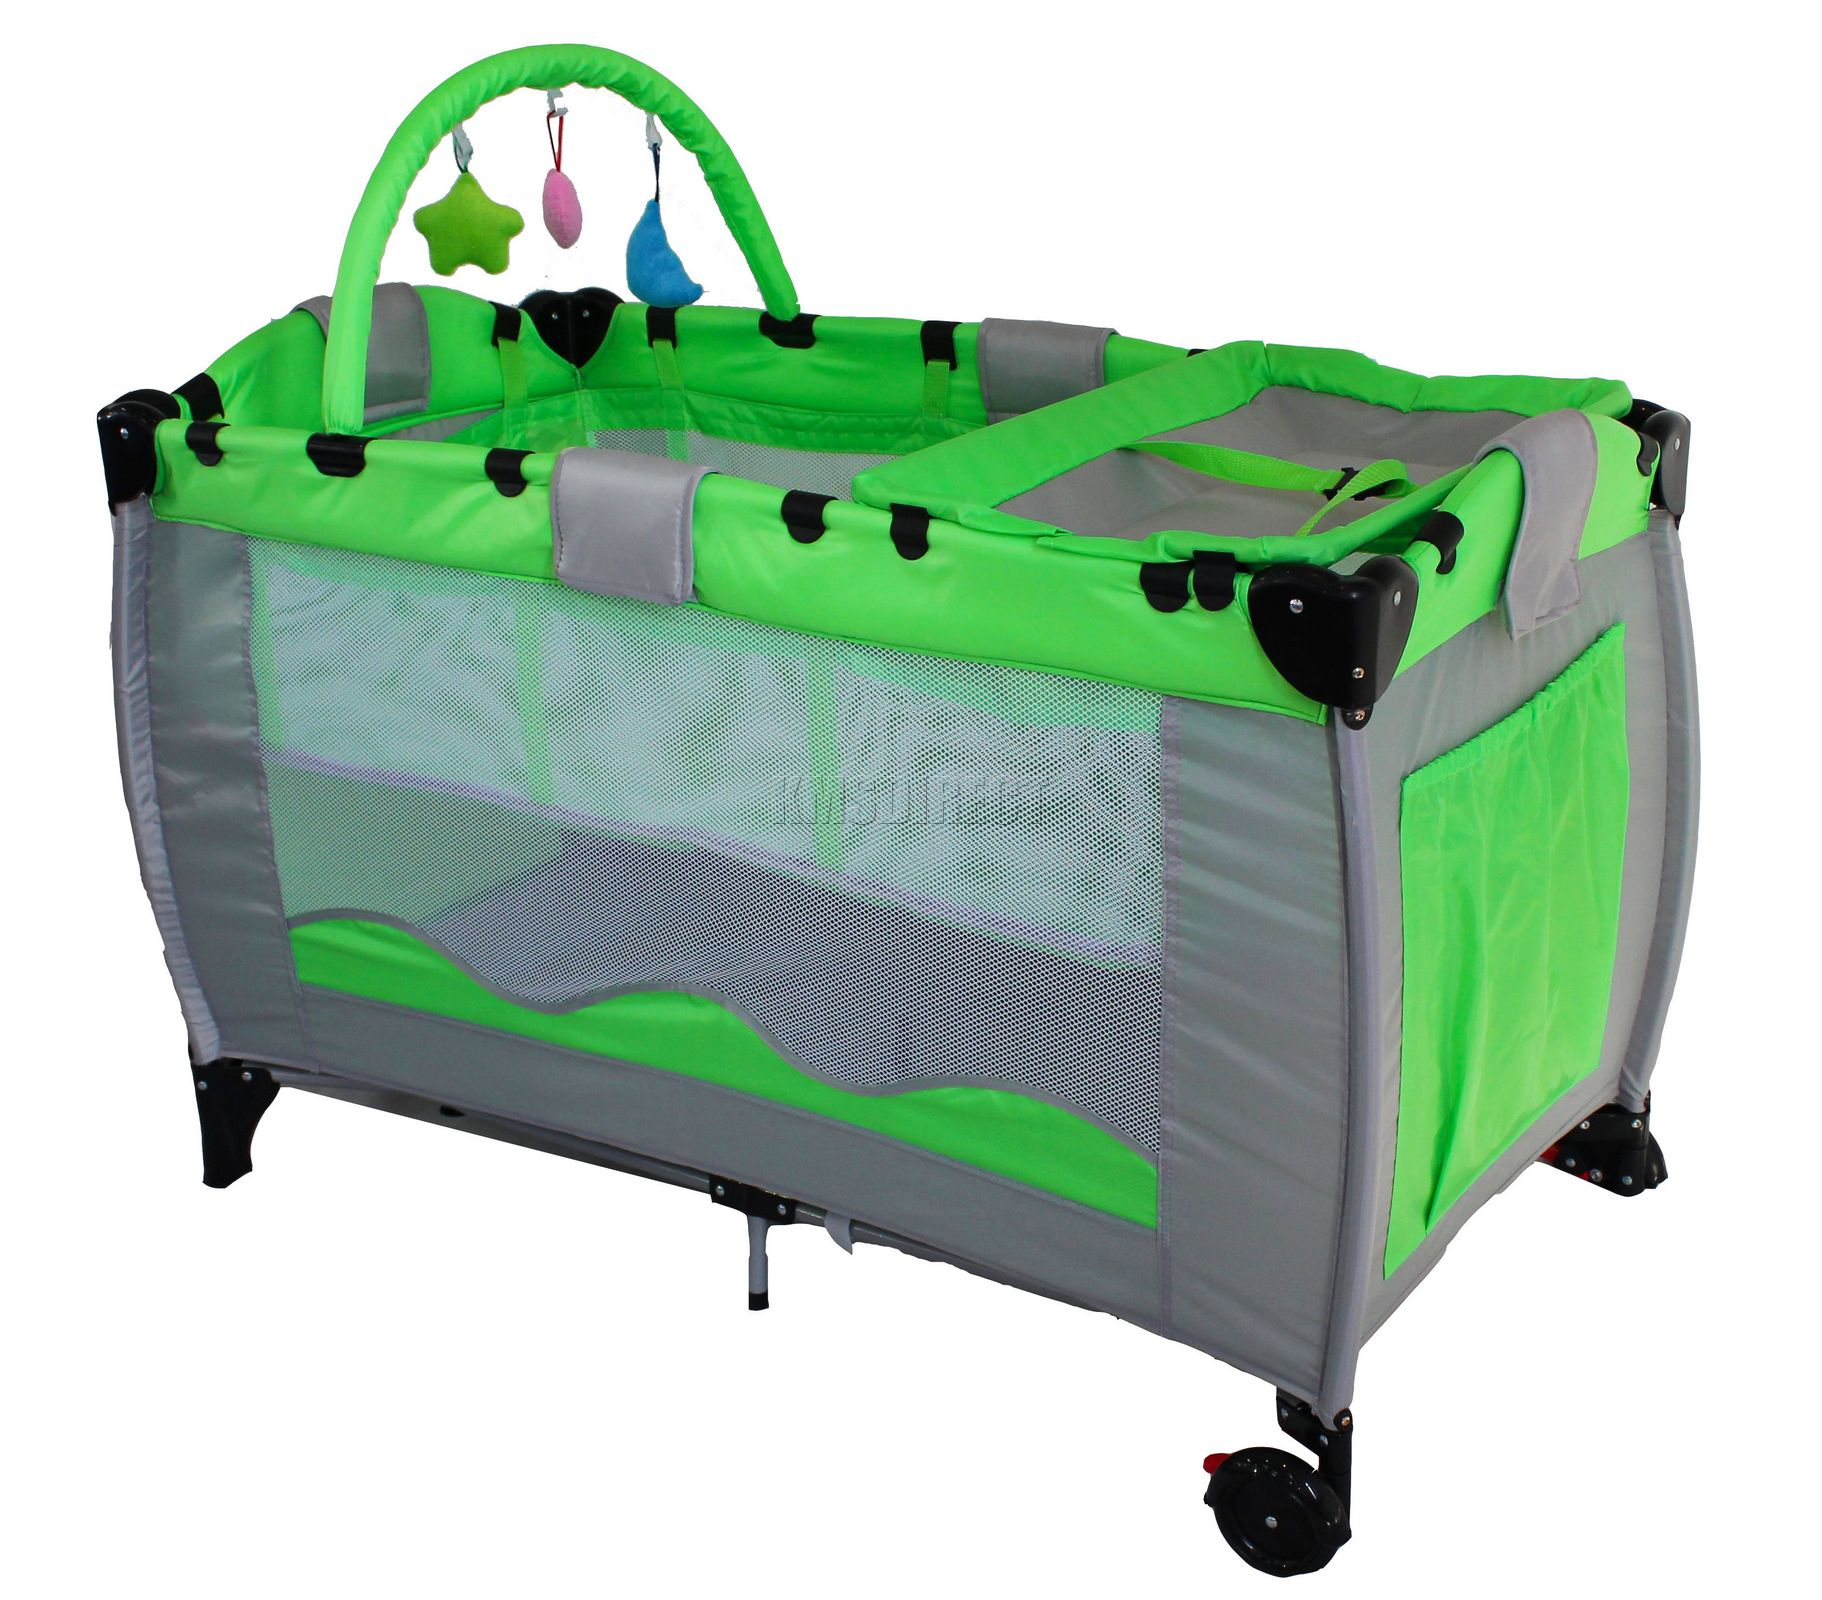 Green Infant Baby Child Travel Bed Cot Bassinet Play Pen Playpen